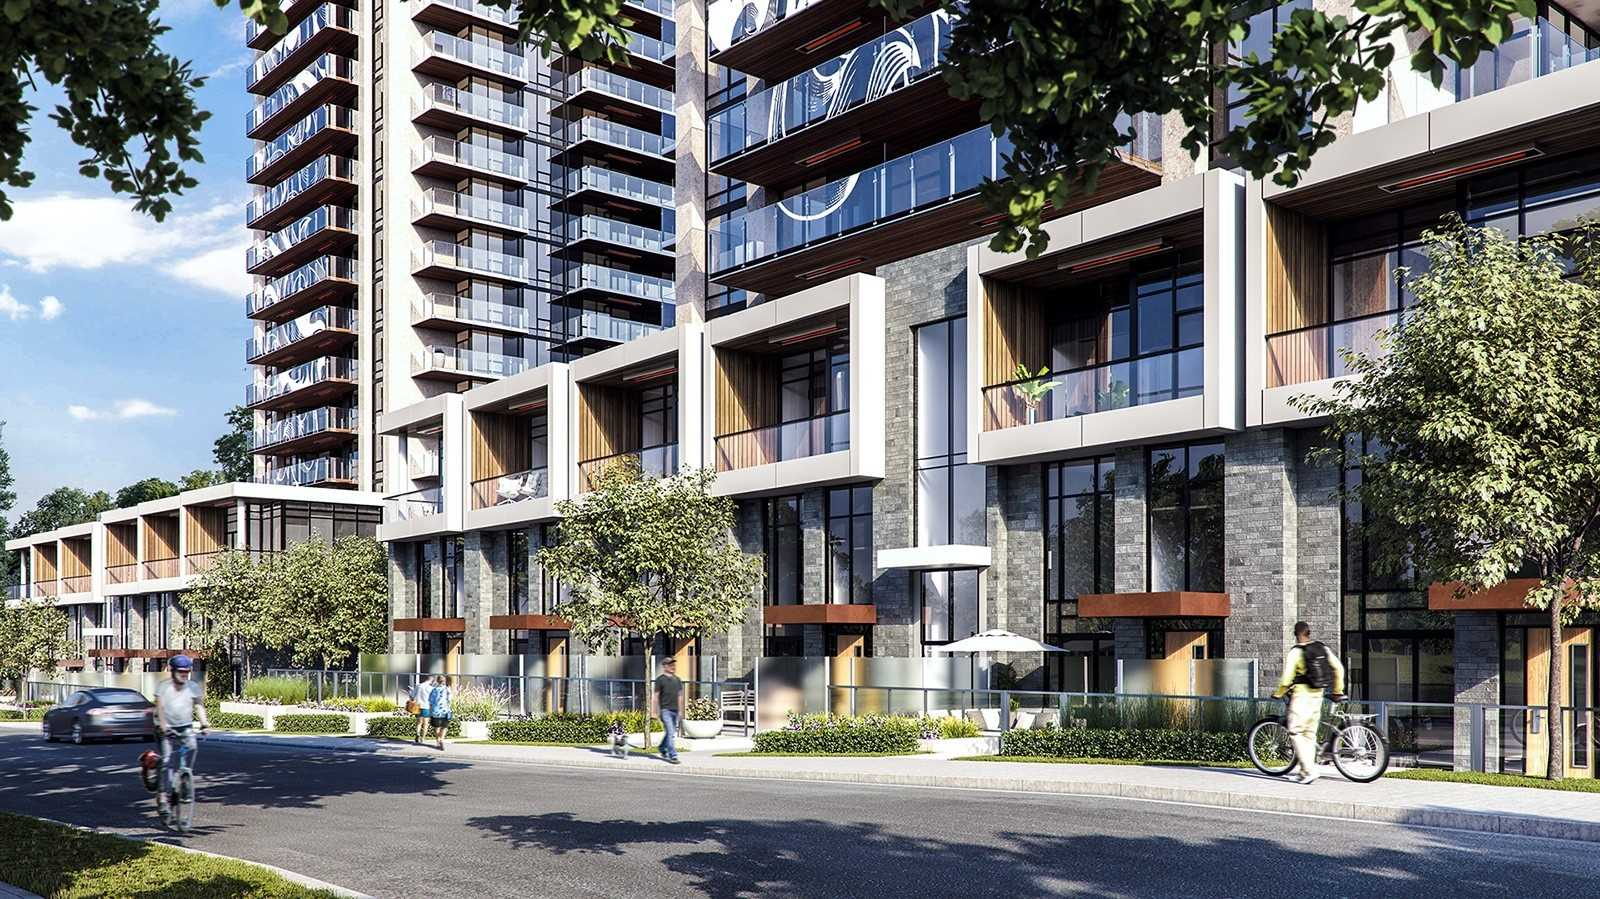 Condo Townhouse For Sale In Toronto , 3 Bedrooms Bedrooms, ,3 BathroomsBathrooms,Condo Townhouse,For Sale,V111,Mcmahon